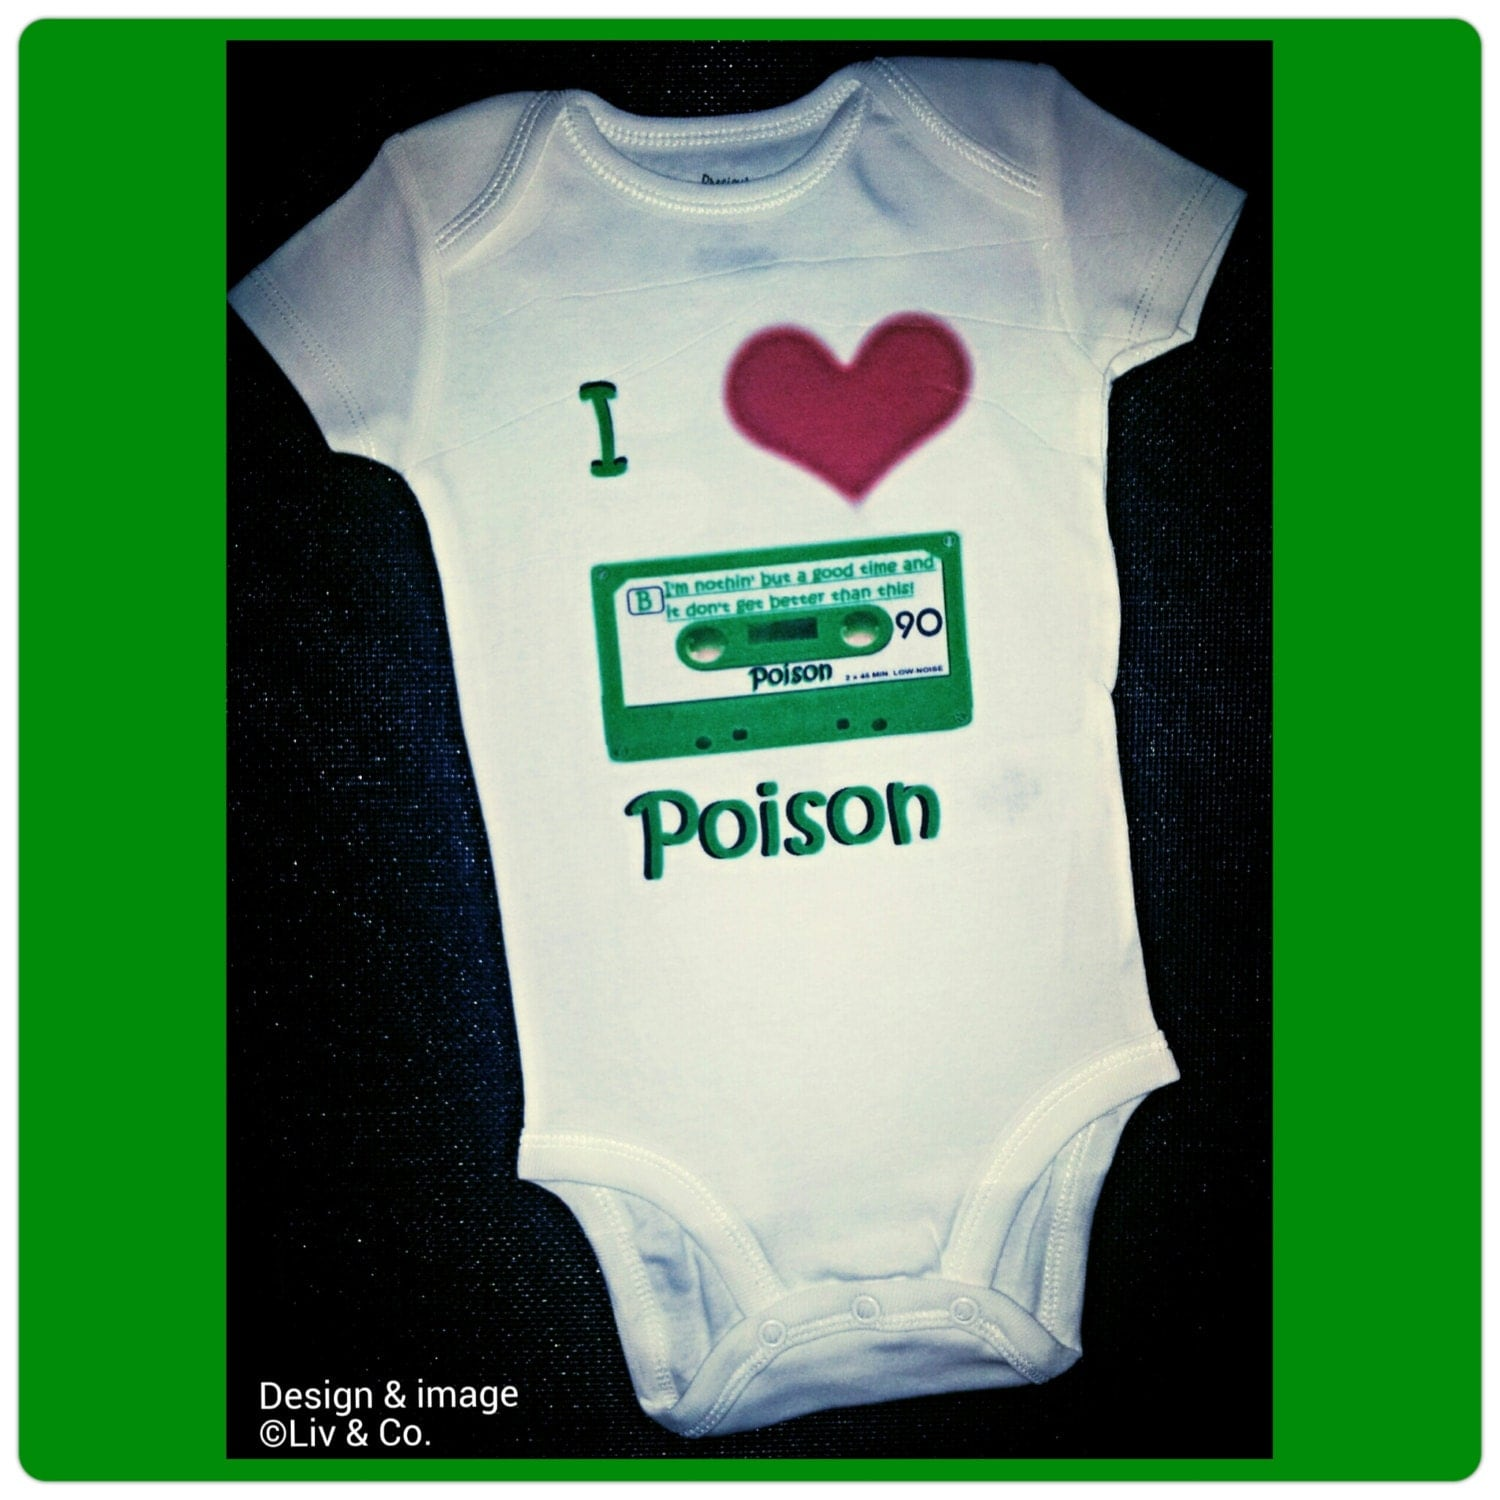 Clothing And Apparel From The 90s Funny baby clothes, 80s, 90s